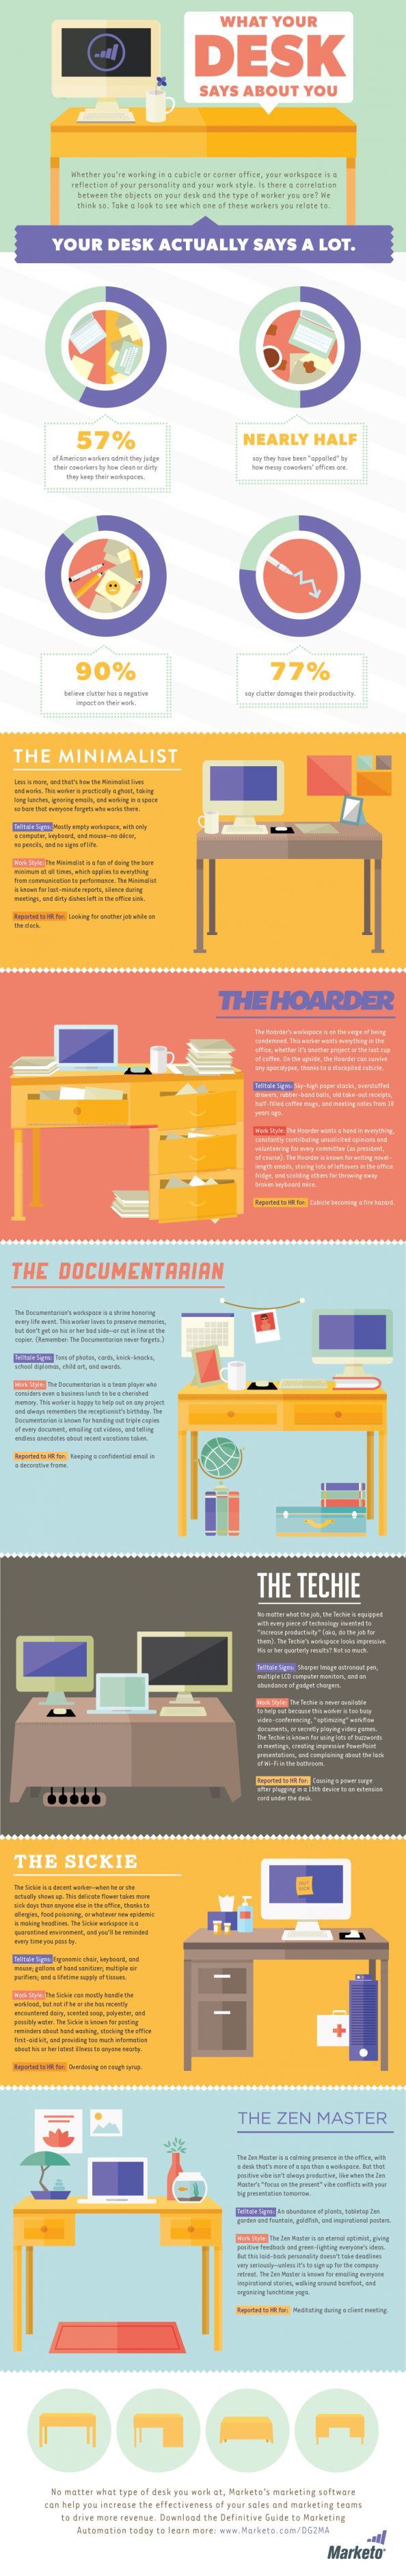 What Your Desk Says About You INFOGRAPHIC  I'm the Techy. What are you? :) - sj